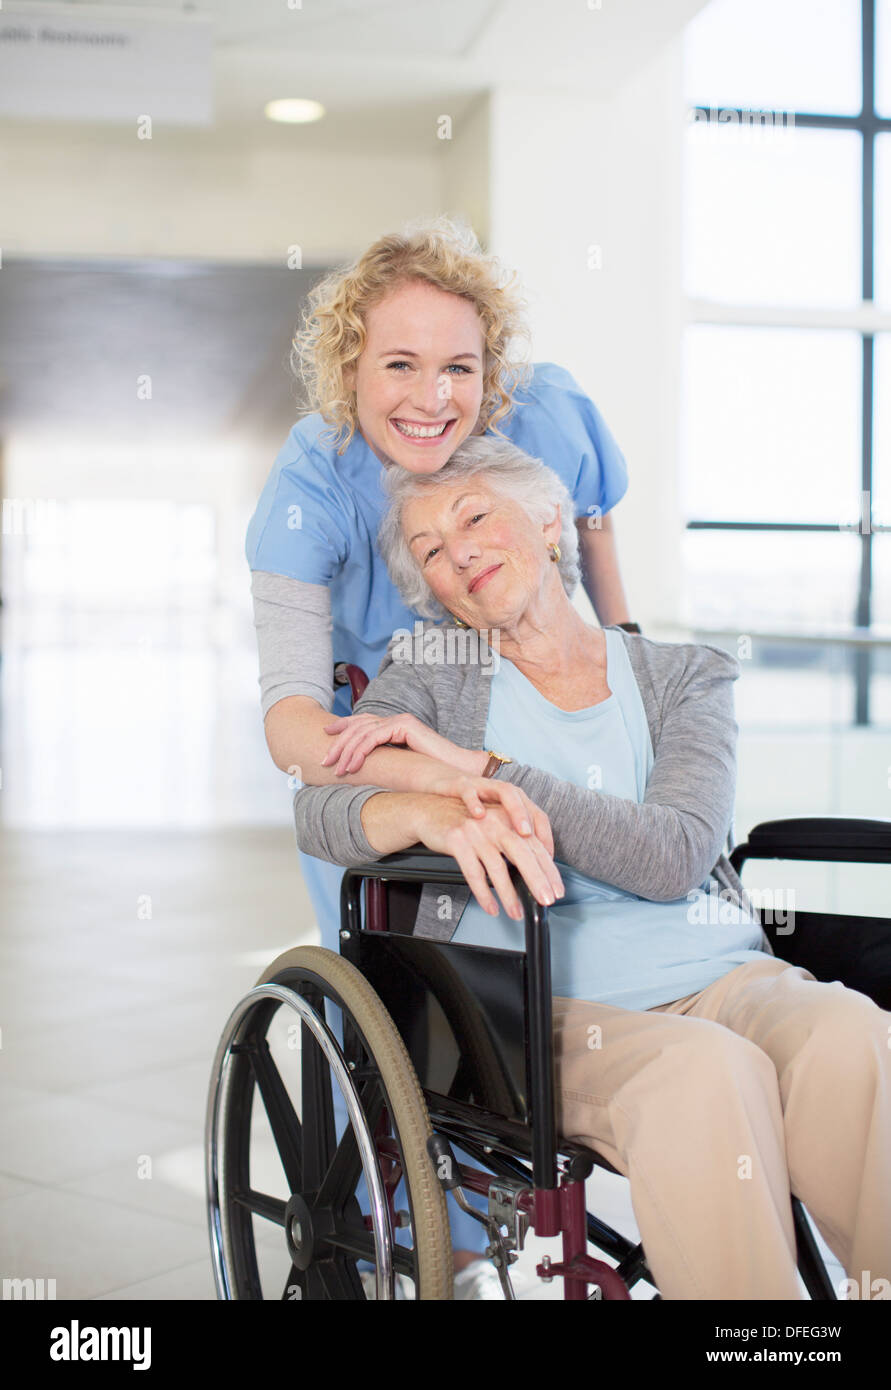 Portrait of smiling nurse and elderly patient in wheelchair - Stock Image